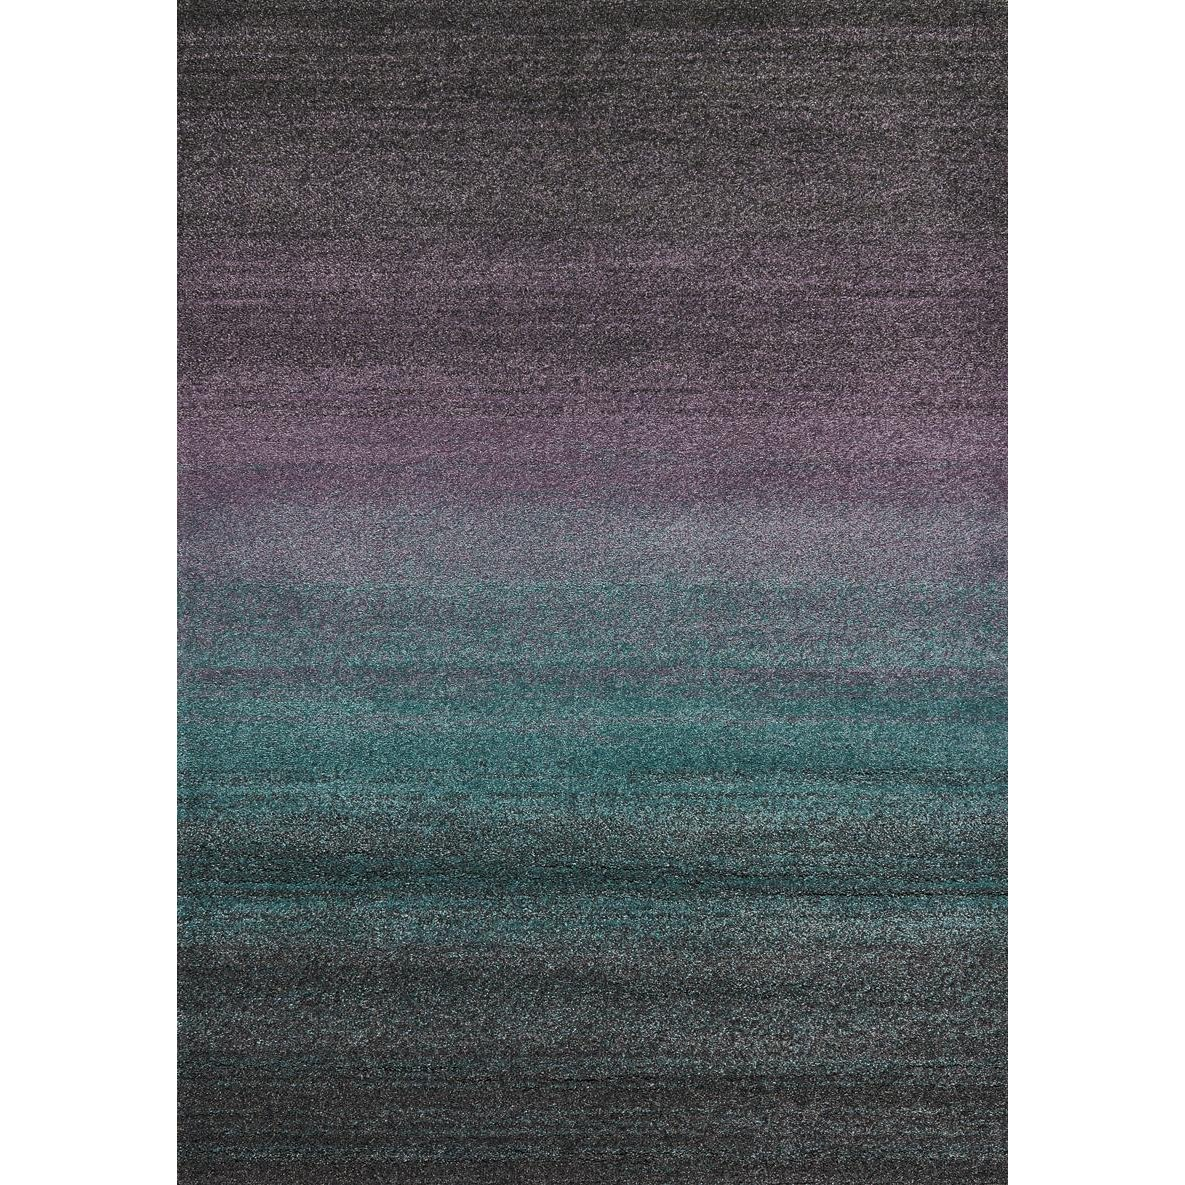 Blue And Purple Area Rugs Rug Designs